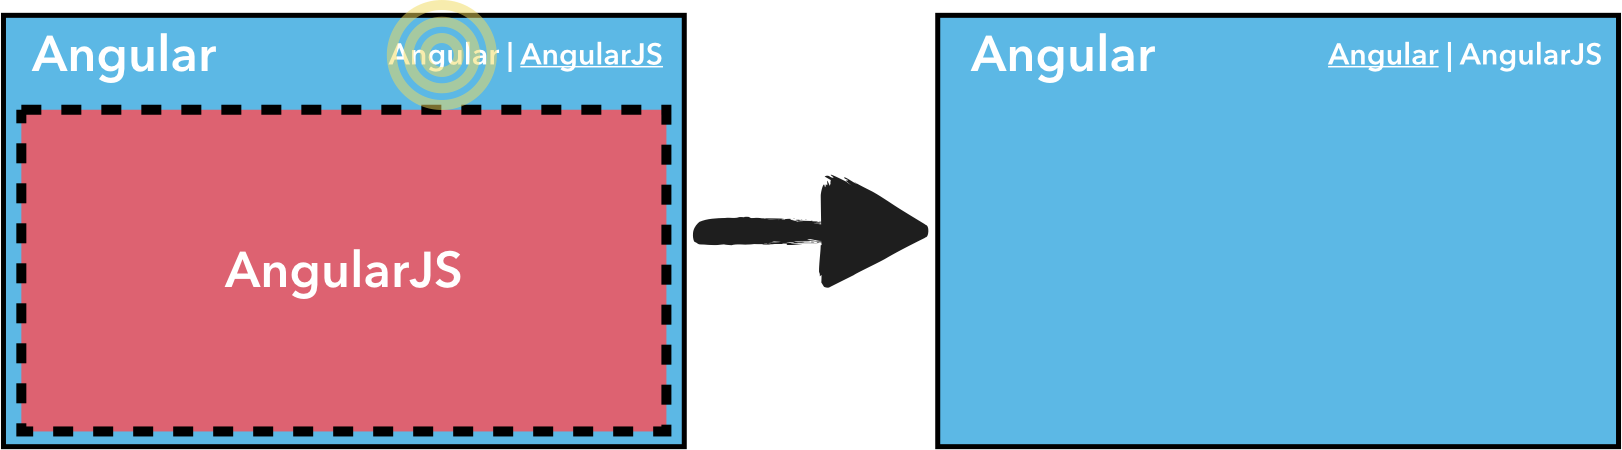 Bullet proof AngularJS migration using iframes